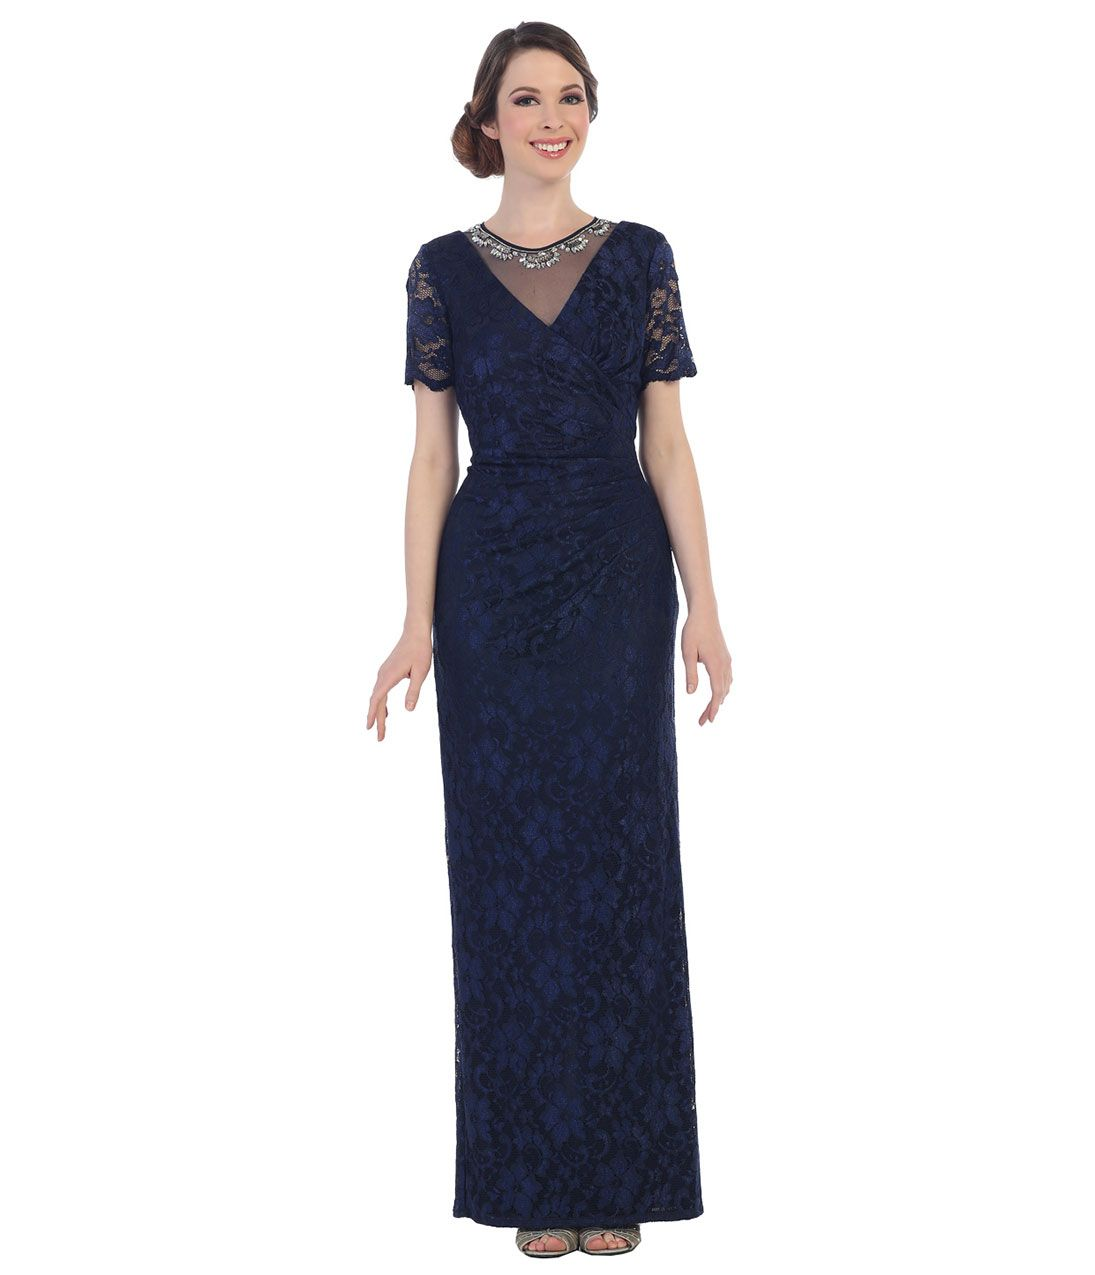 1920s Tail Party Dresses Navy Blue Modest V Neck Lace Short Sleeve Gown 123 00 At Vintagedancer